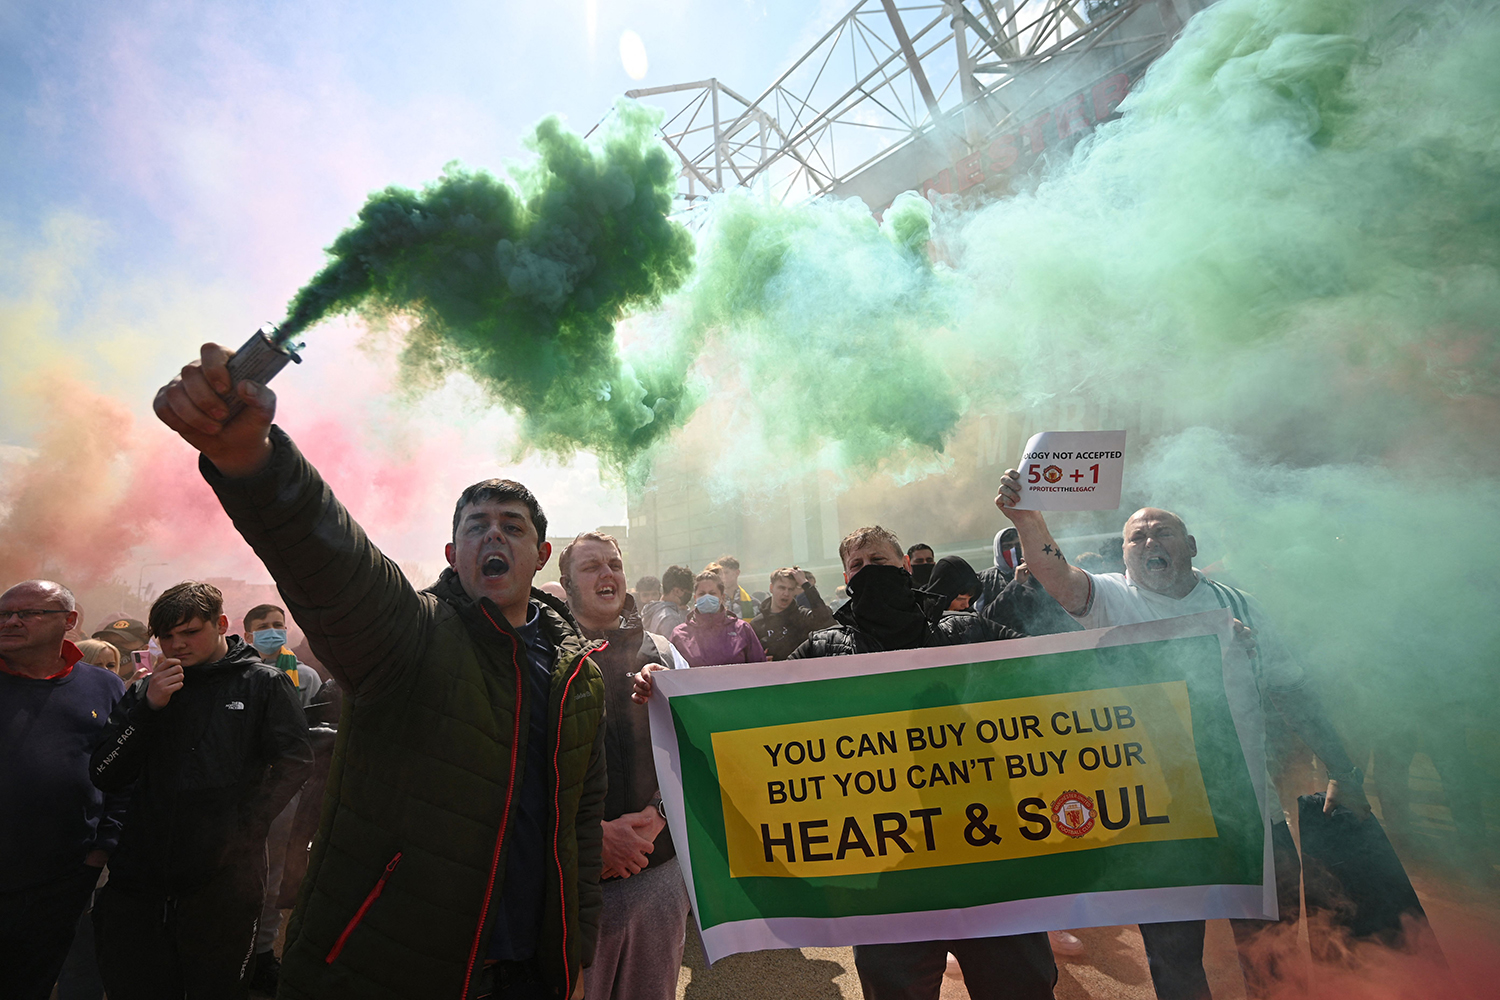 Fans protest against Manchester United's owners